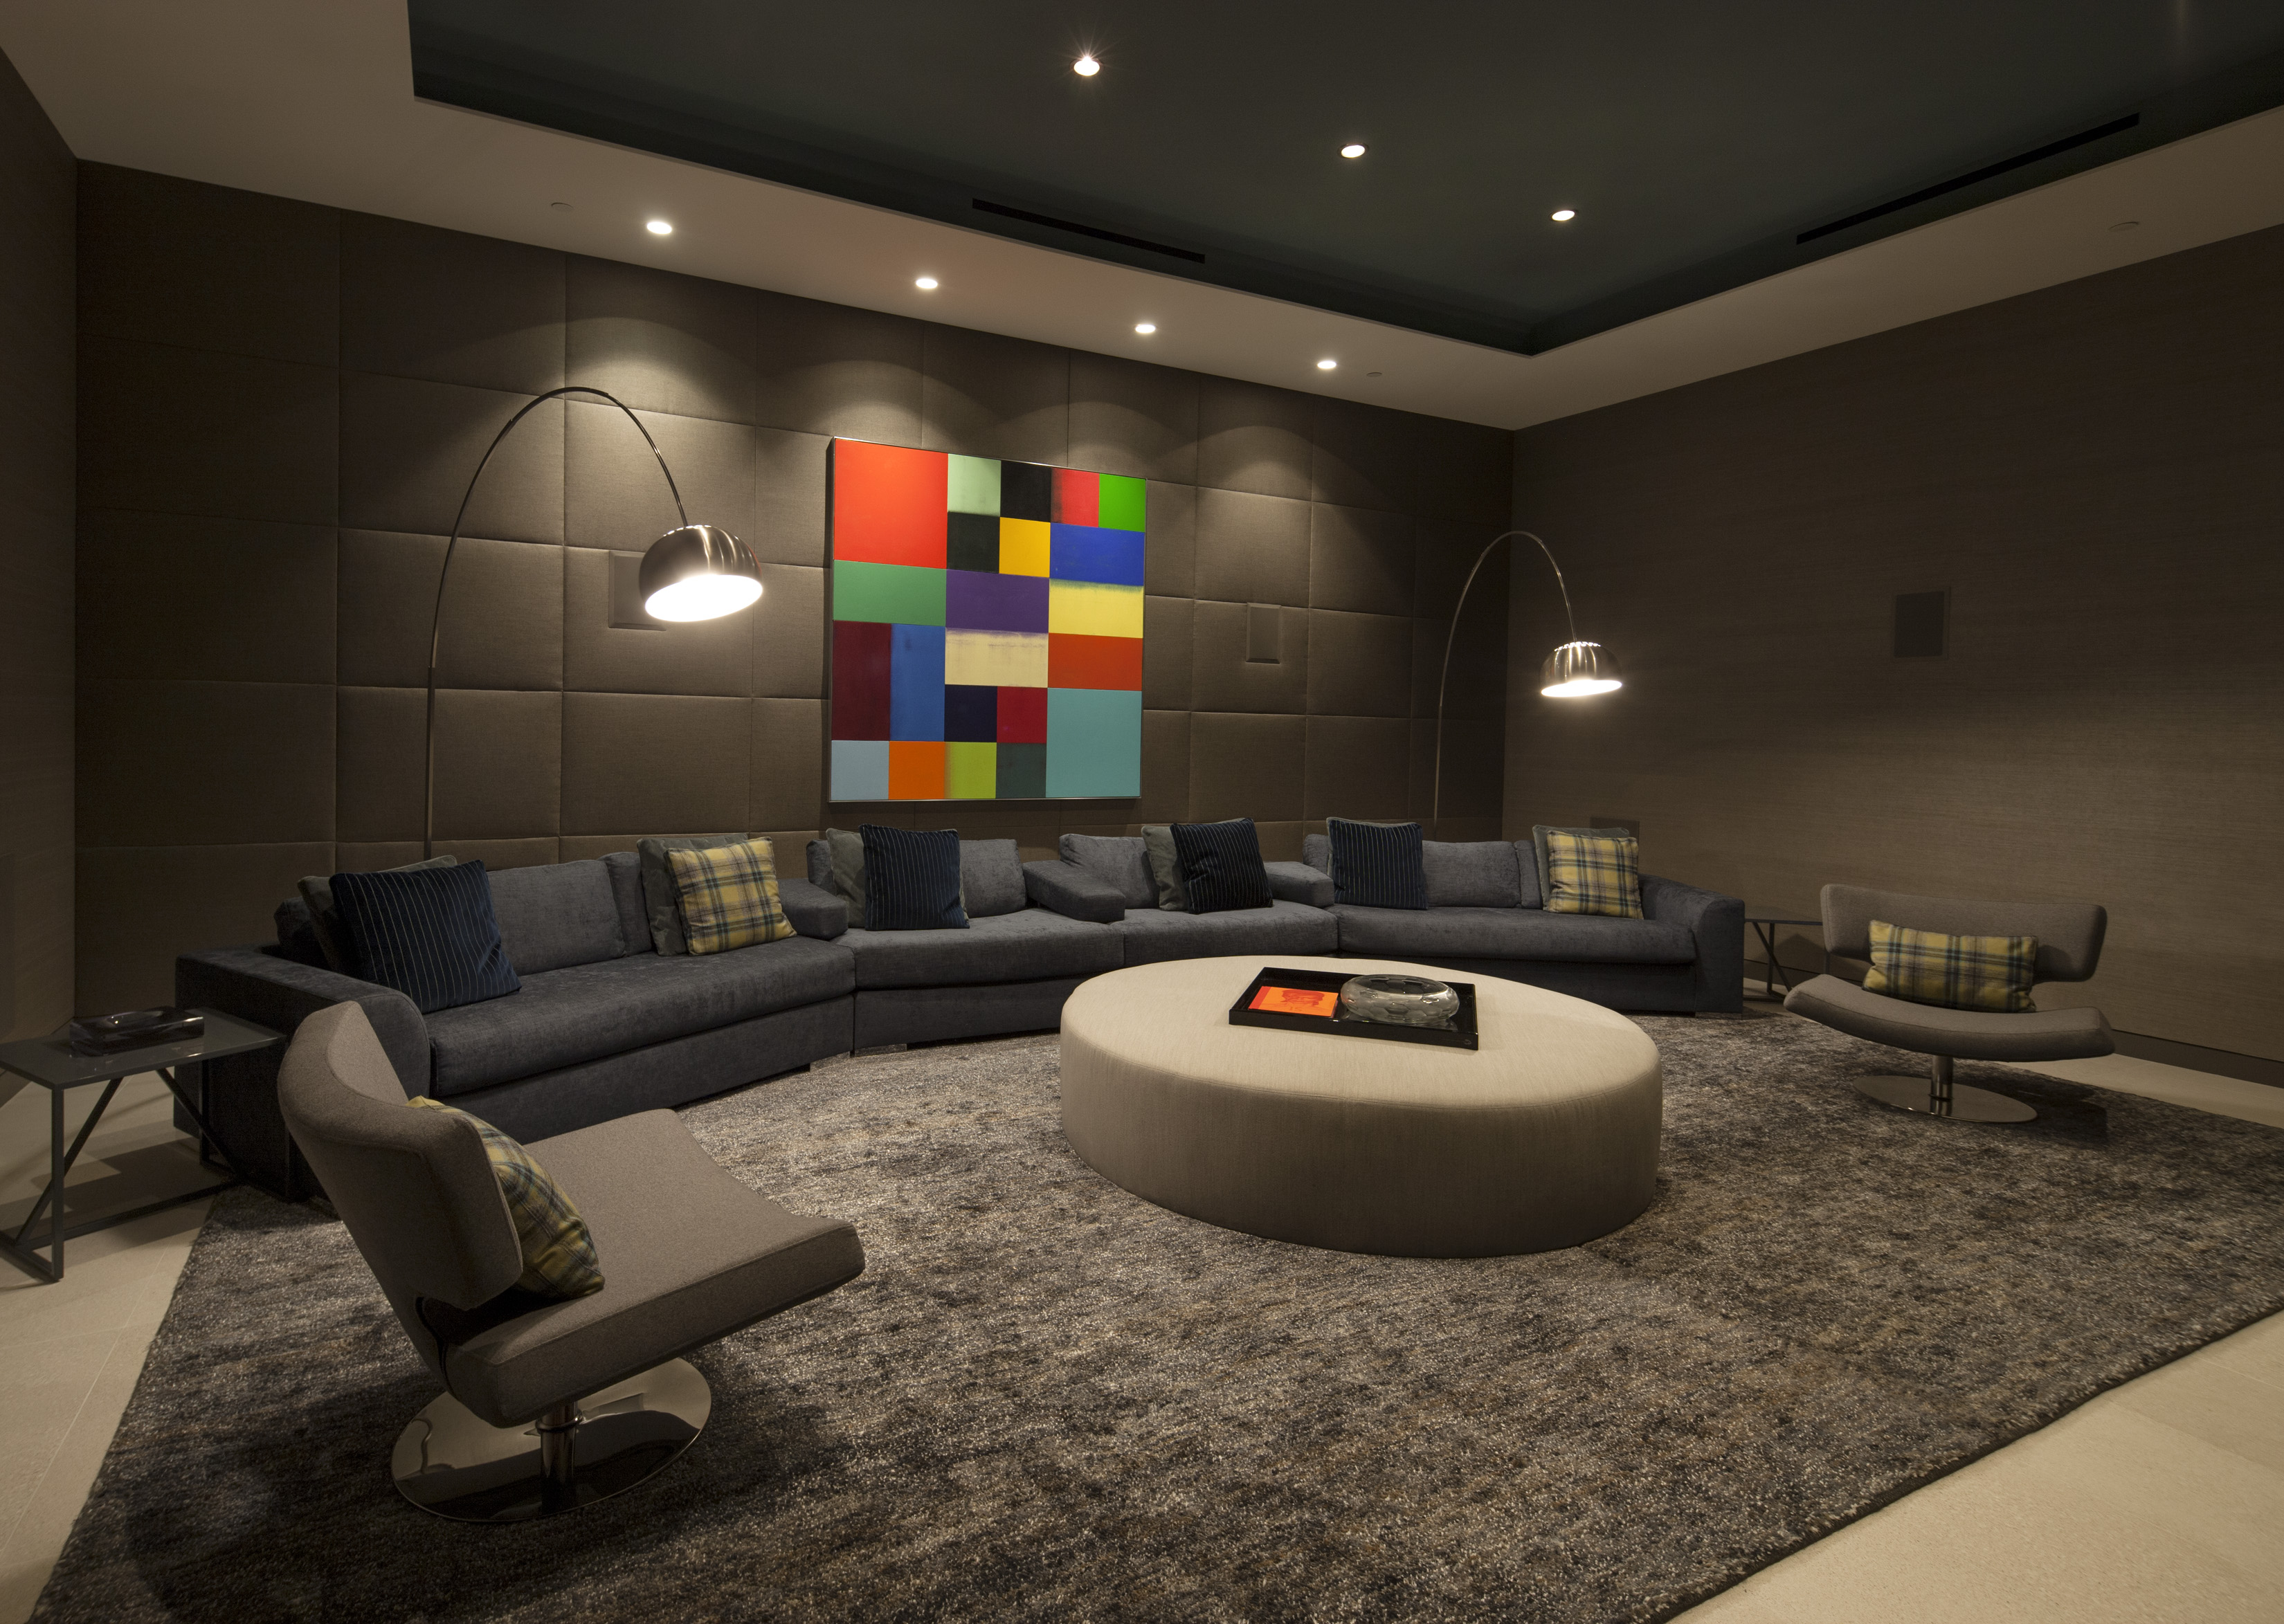 Home cinema room | Interior Design Ideas.